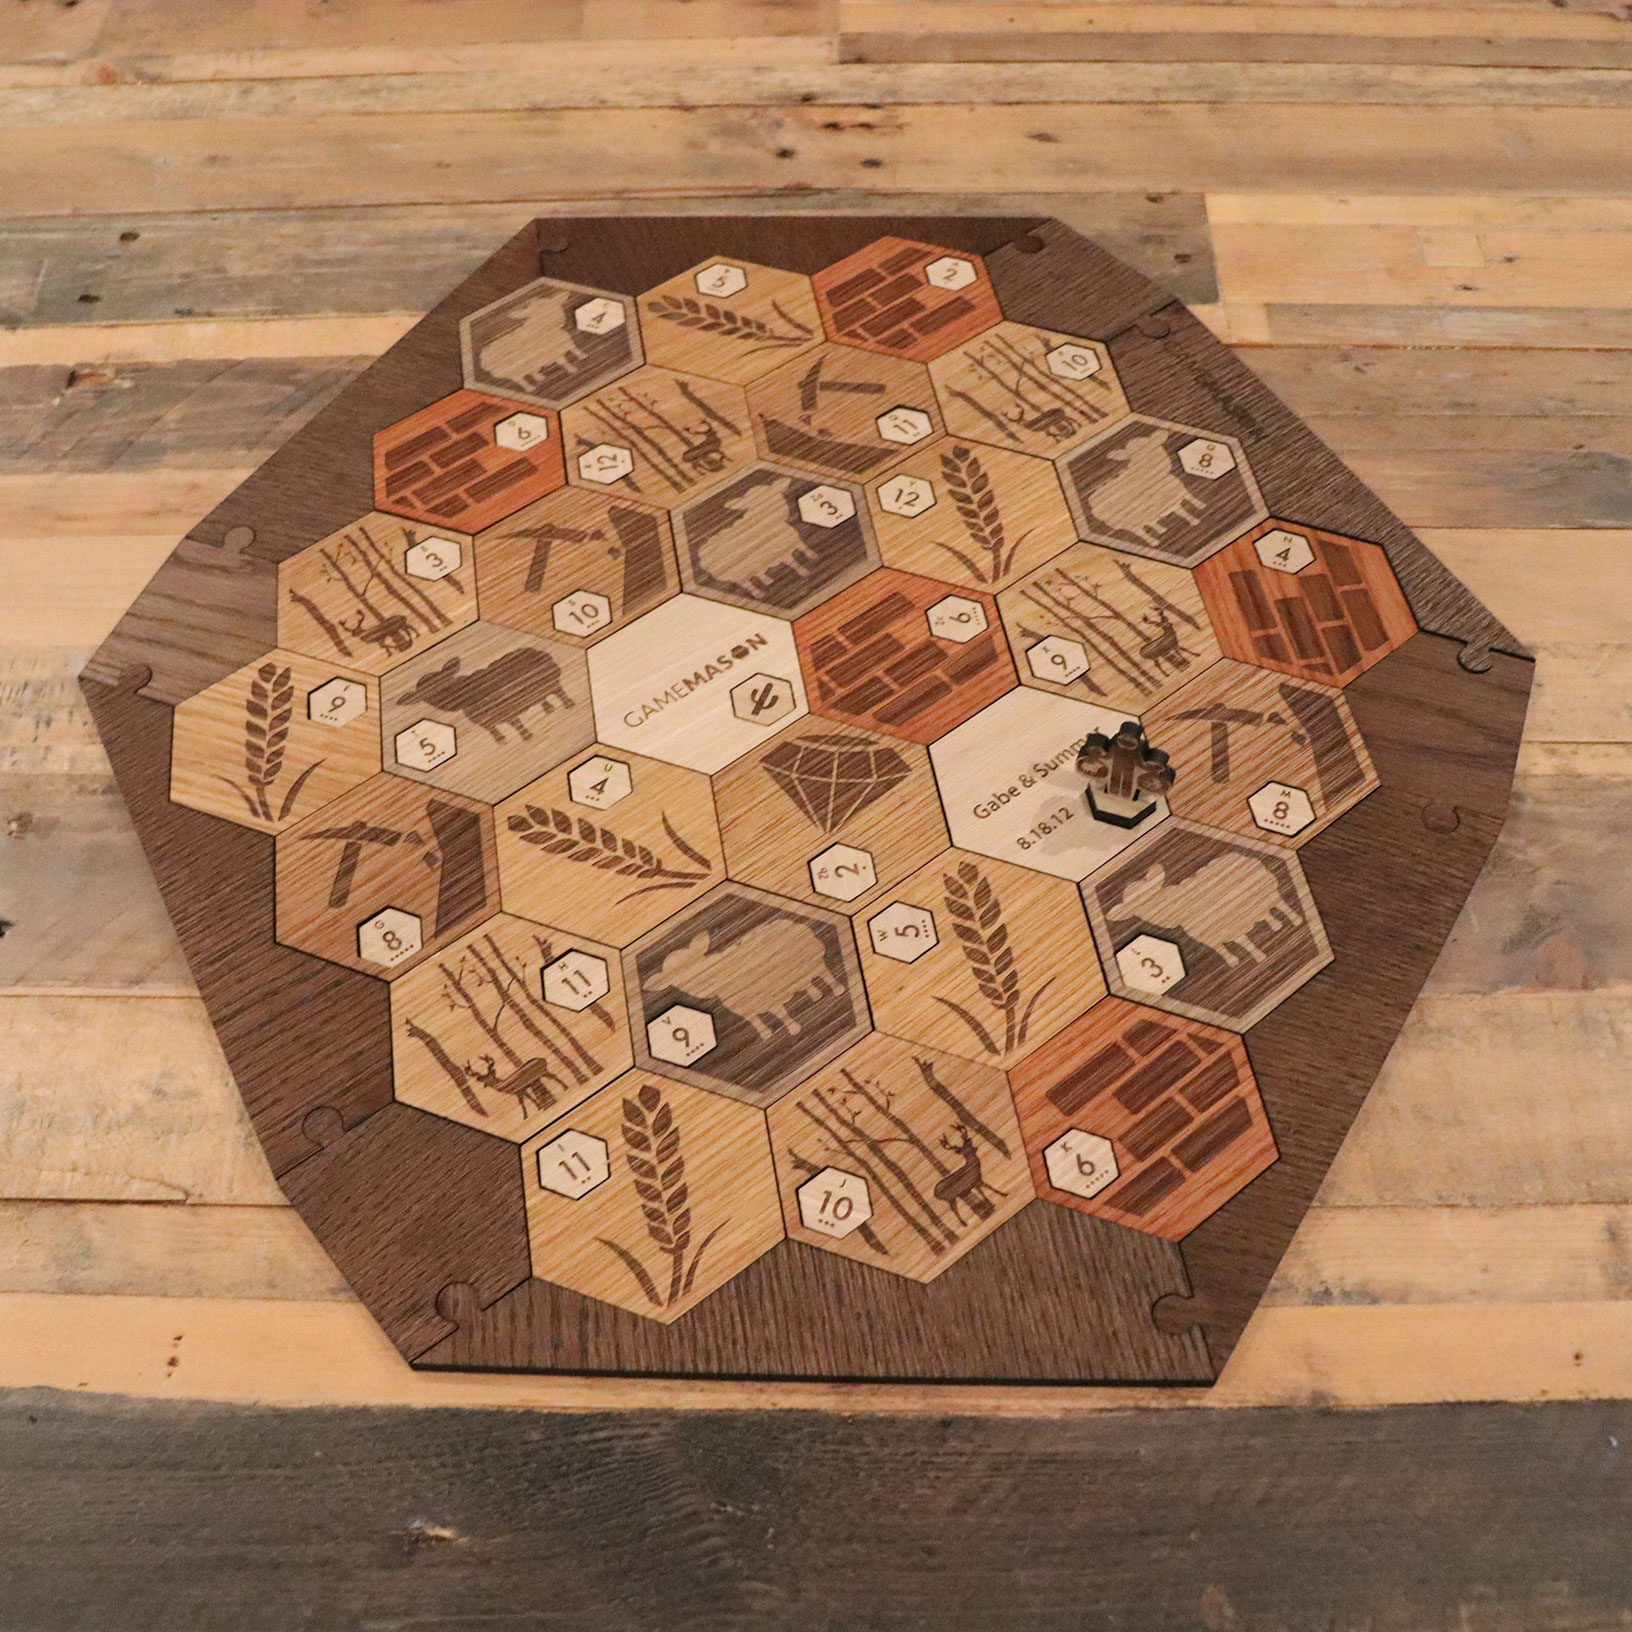 Deluxe Wooden Catan Set White Oak 5 6 Player Expansion Wedding Anniversary Edition